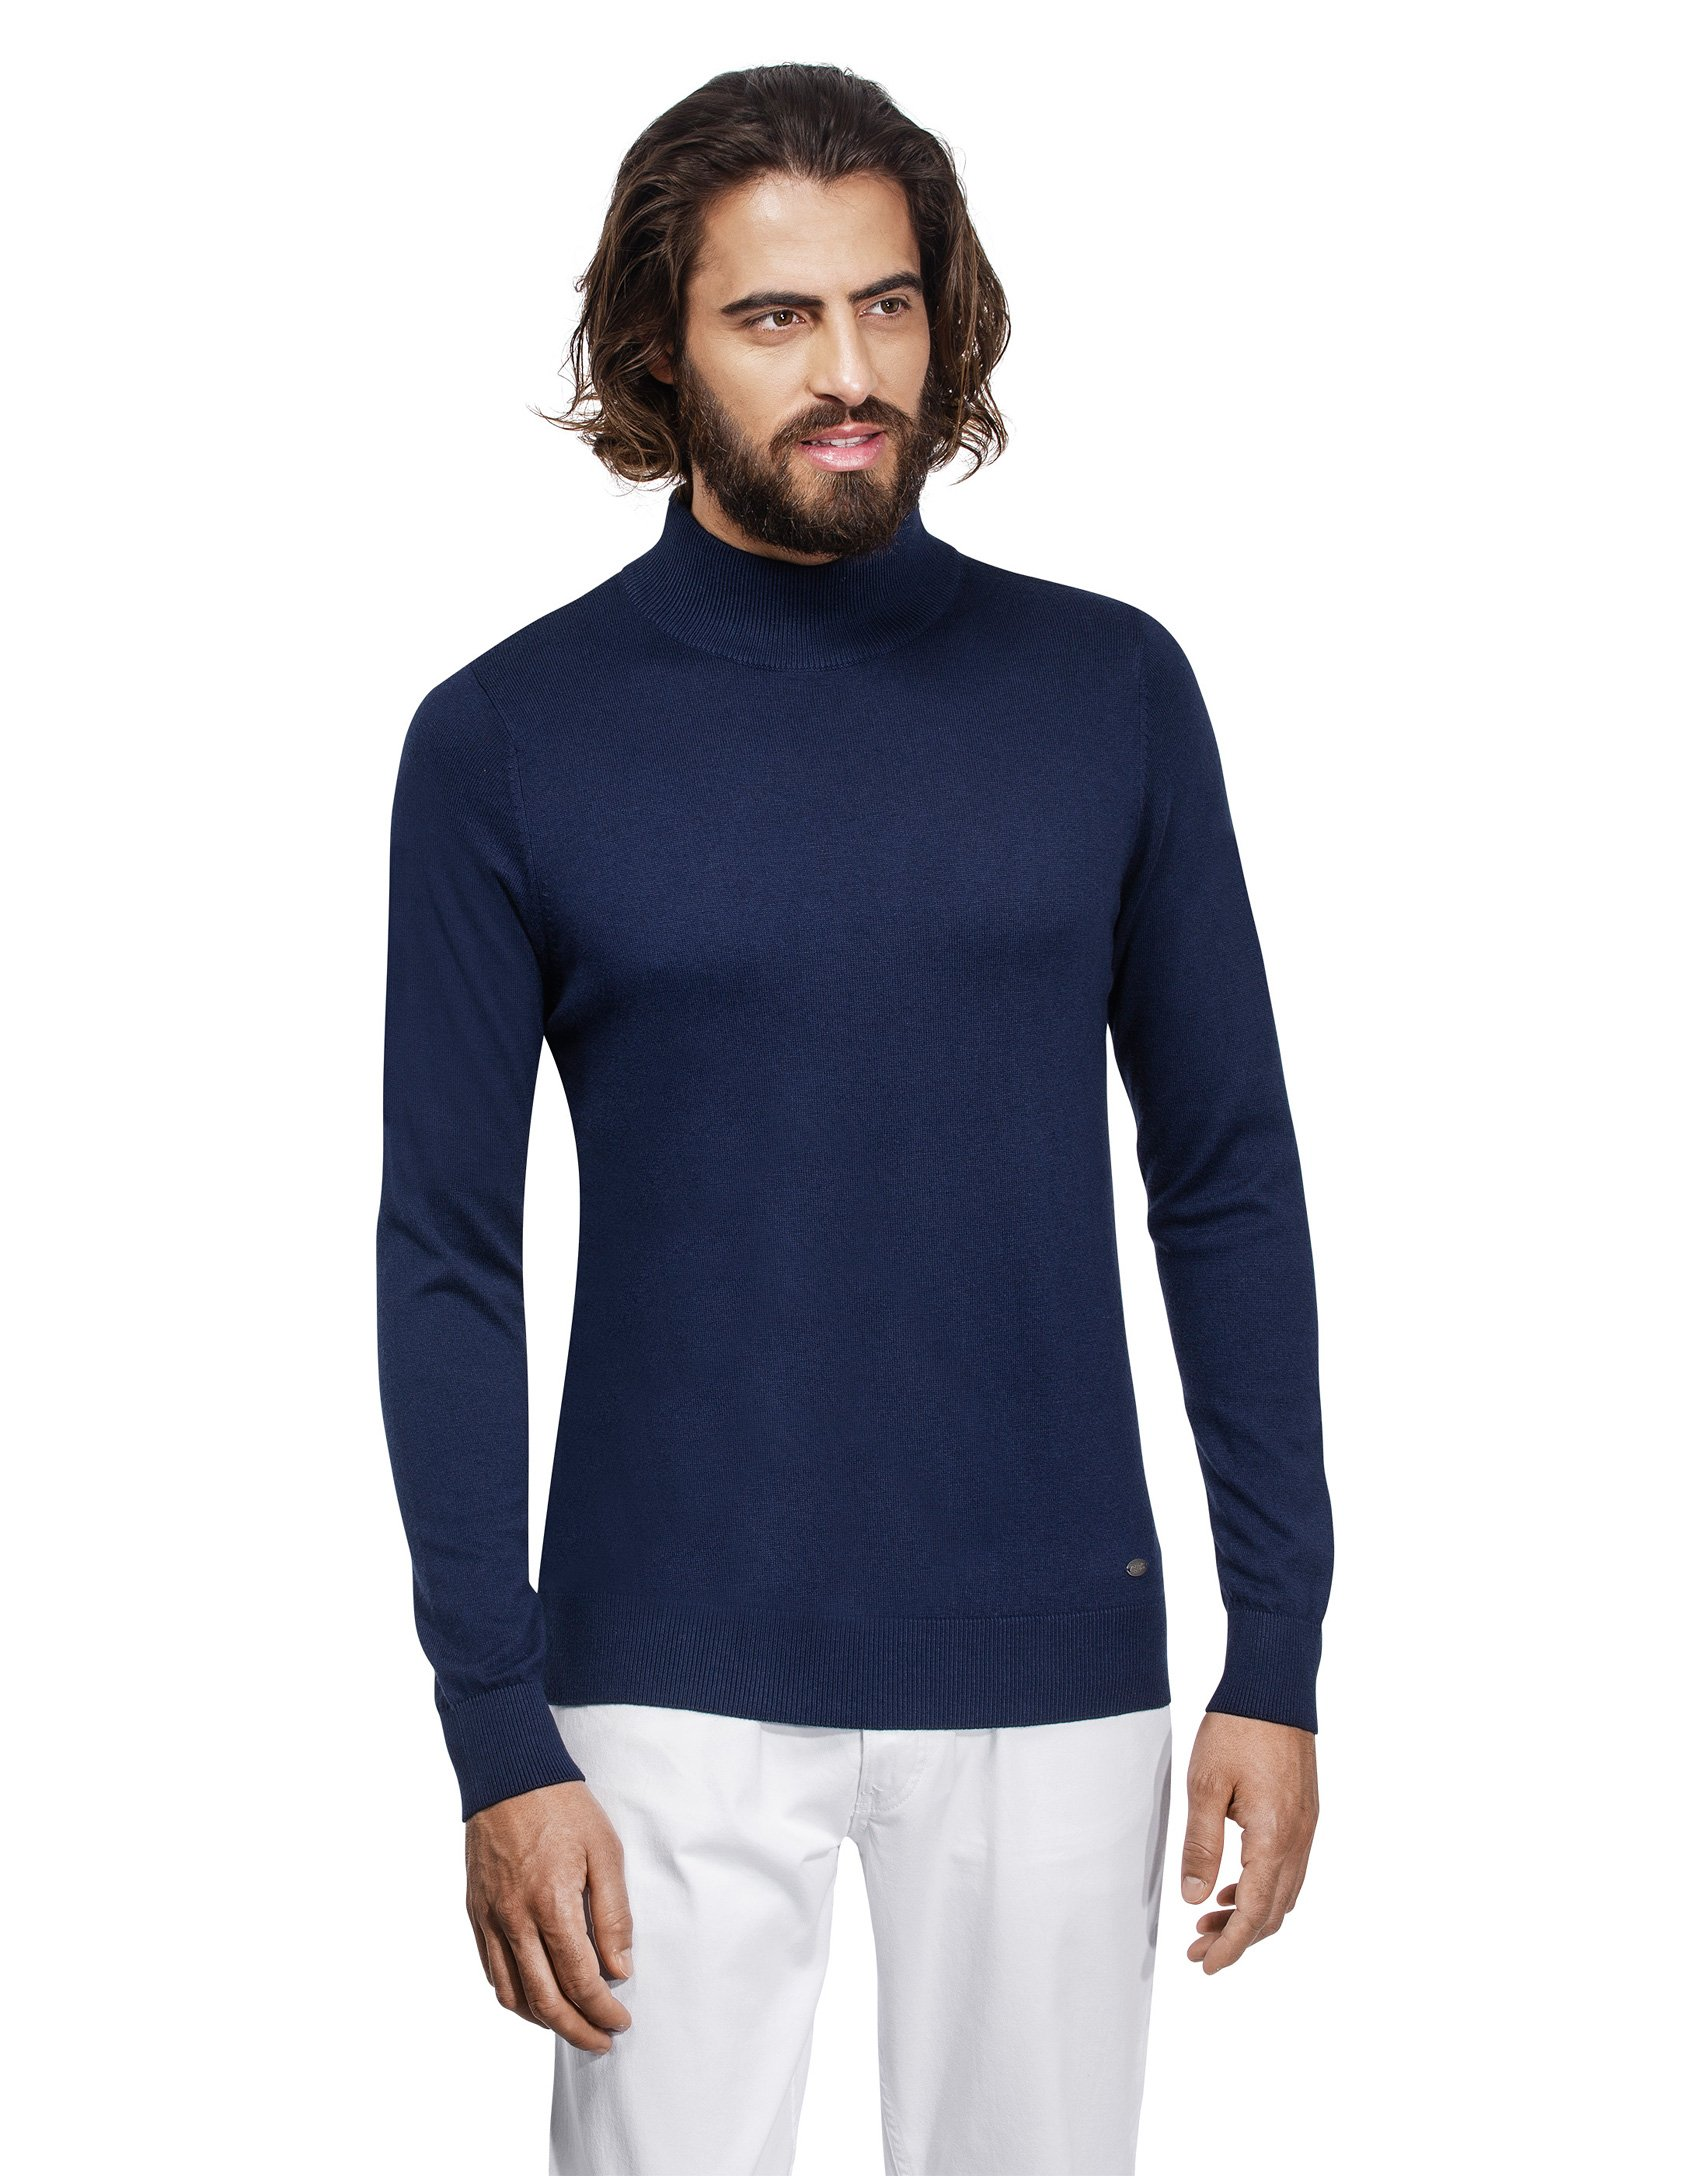 Vincenzo Boretti Men's Sweater Ribbed Turtle-Neck Slim-fit Dark Blue Small